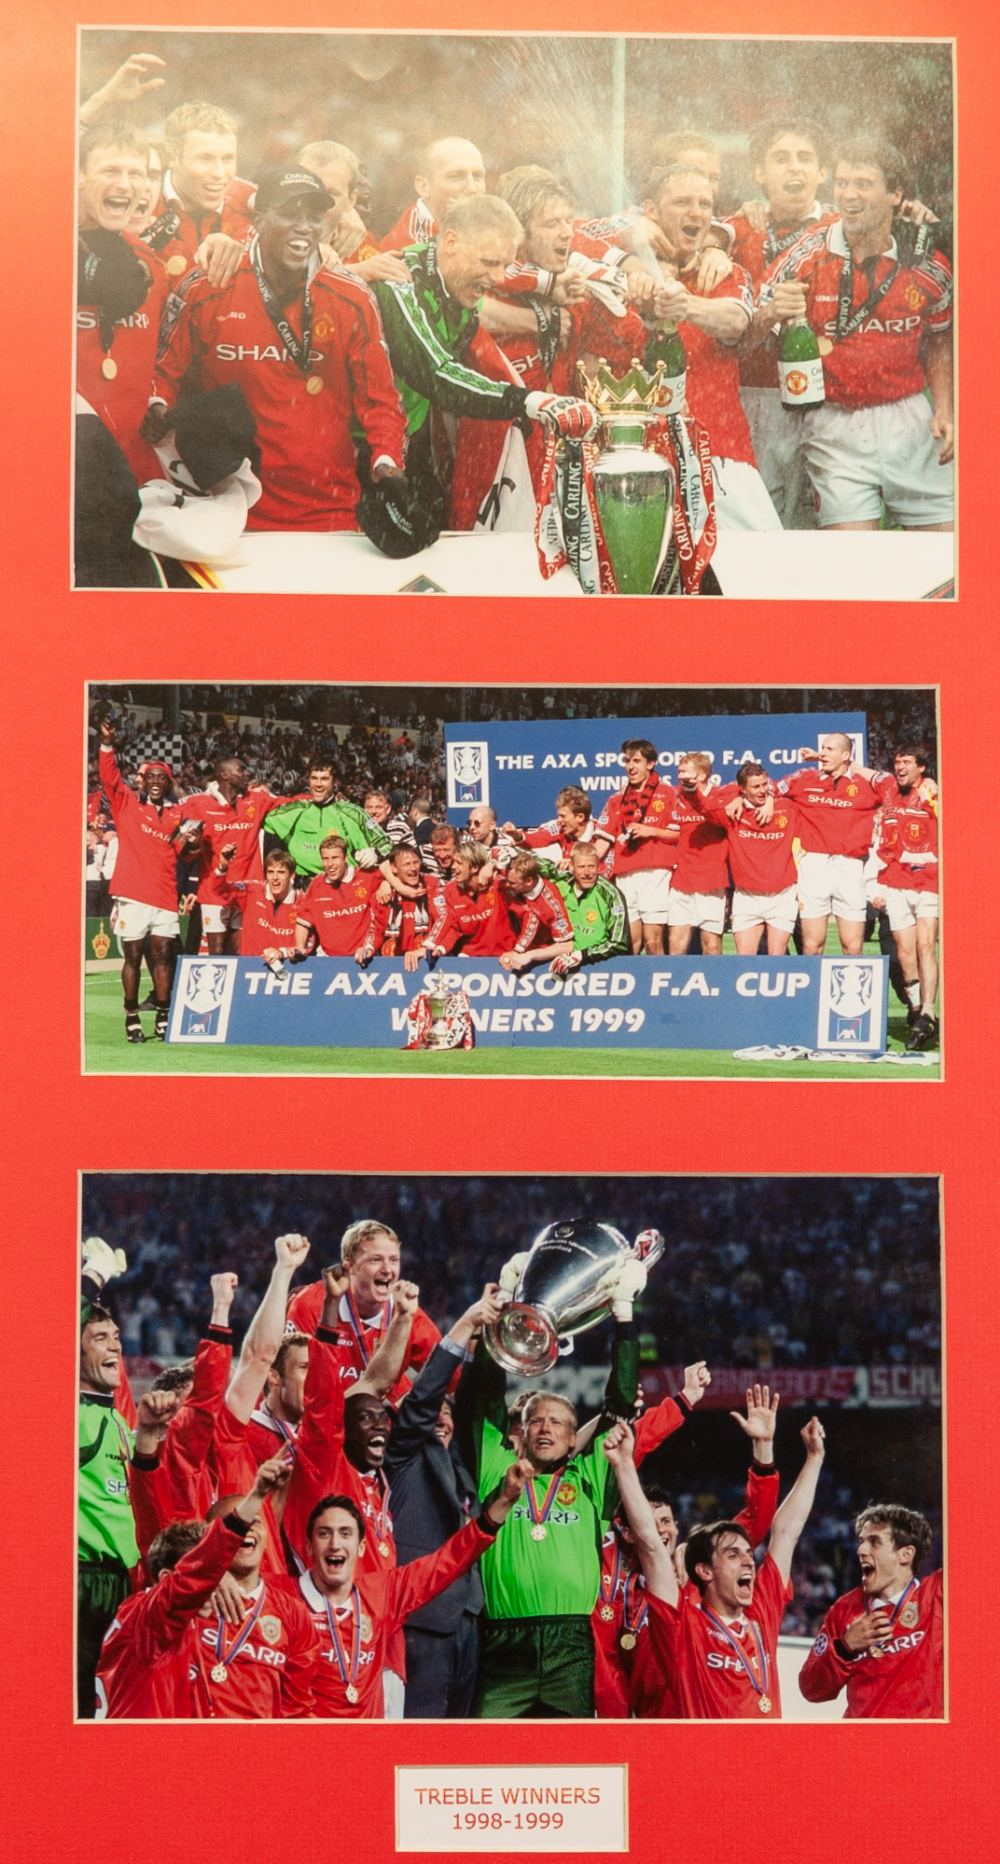 Lot 69 - THREE FRAMED AND GLAZED PICTURES OF MANCHESTER UNITED PLAYERS, Team photo 1995/96, signed and 12